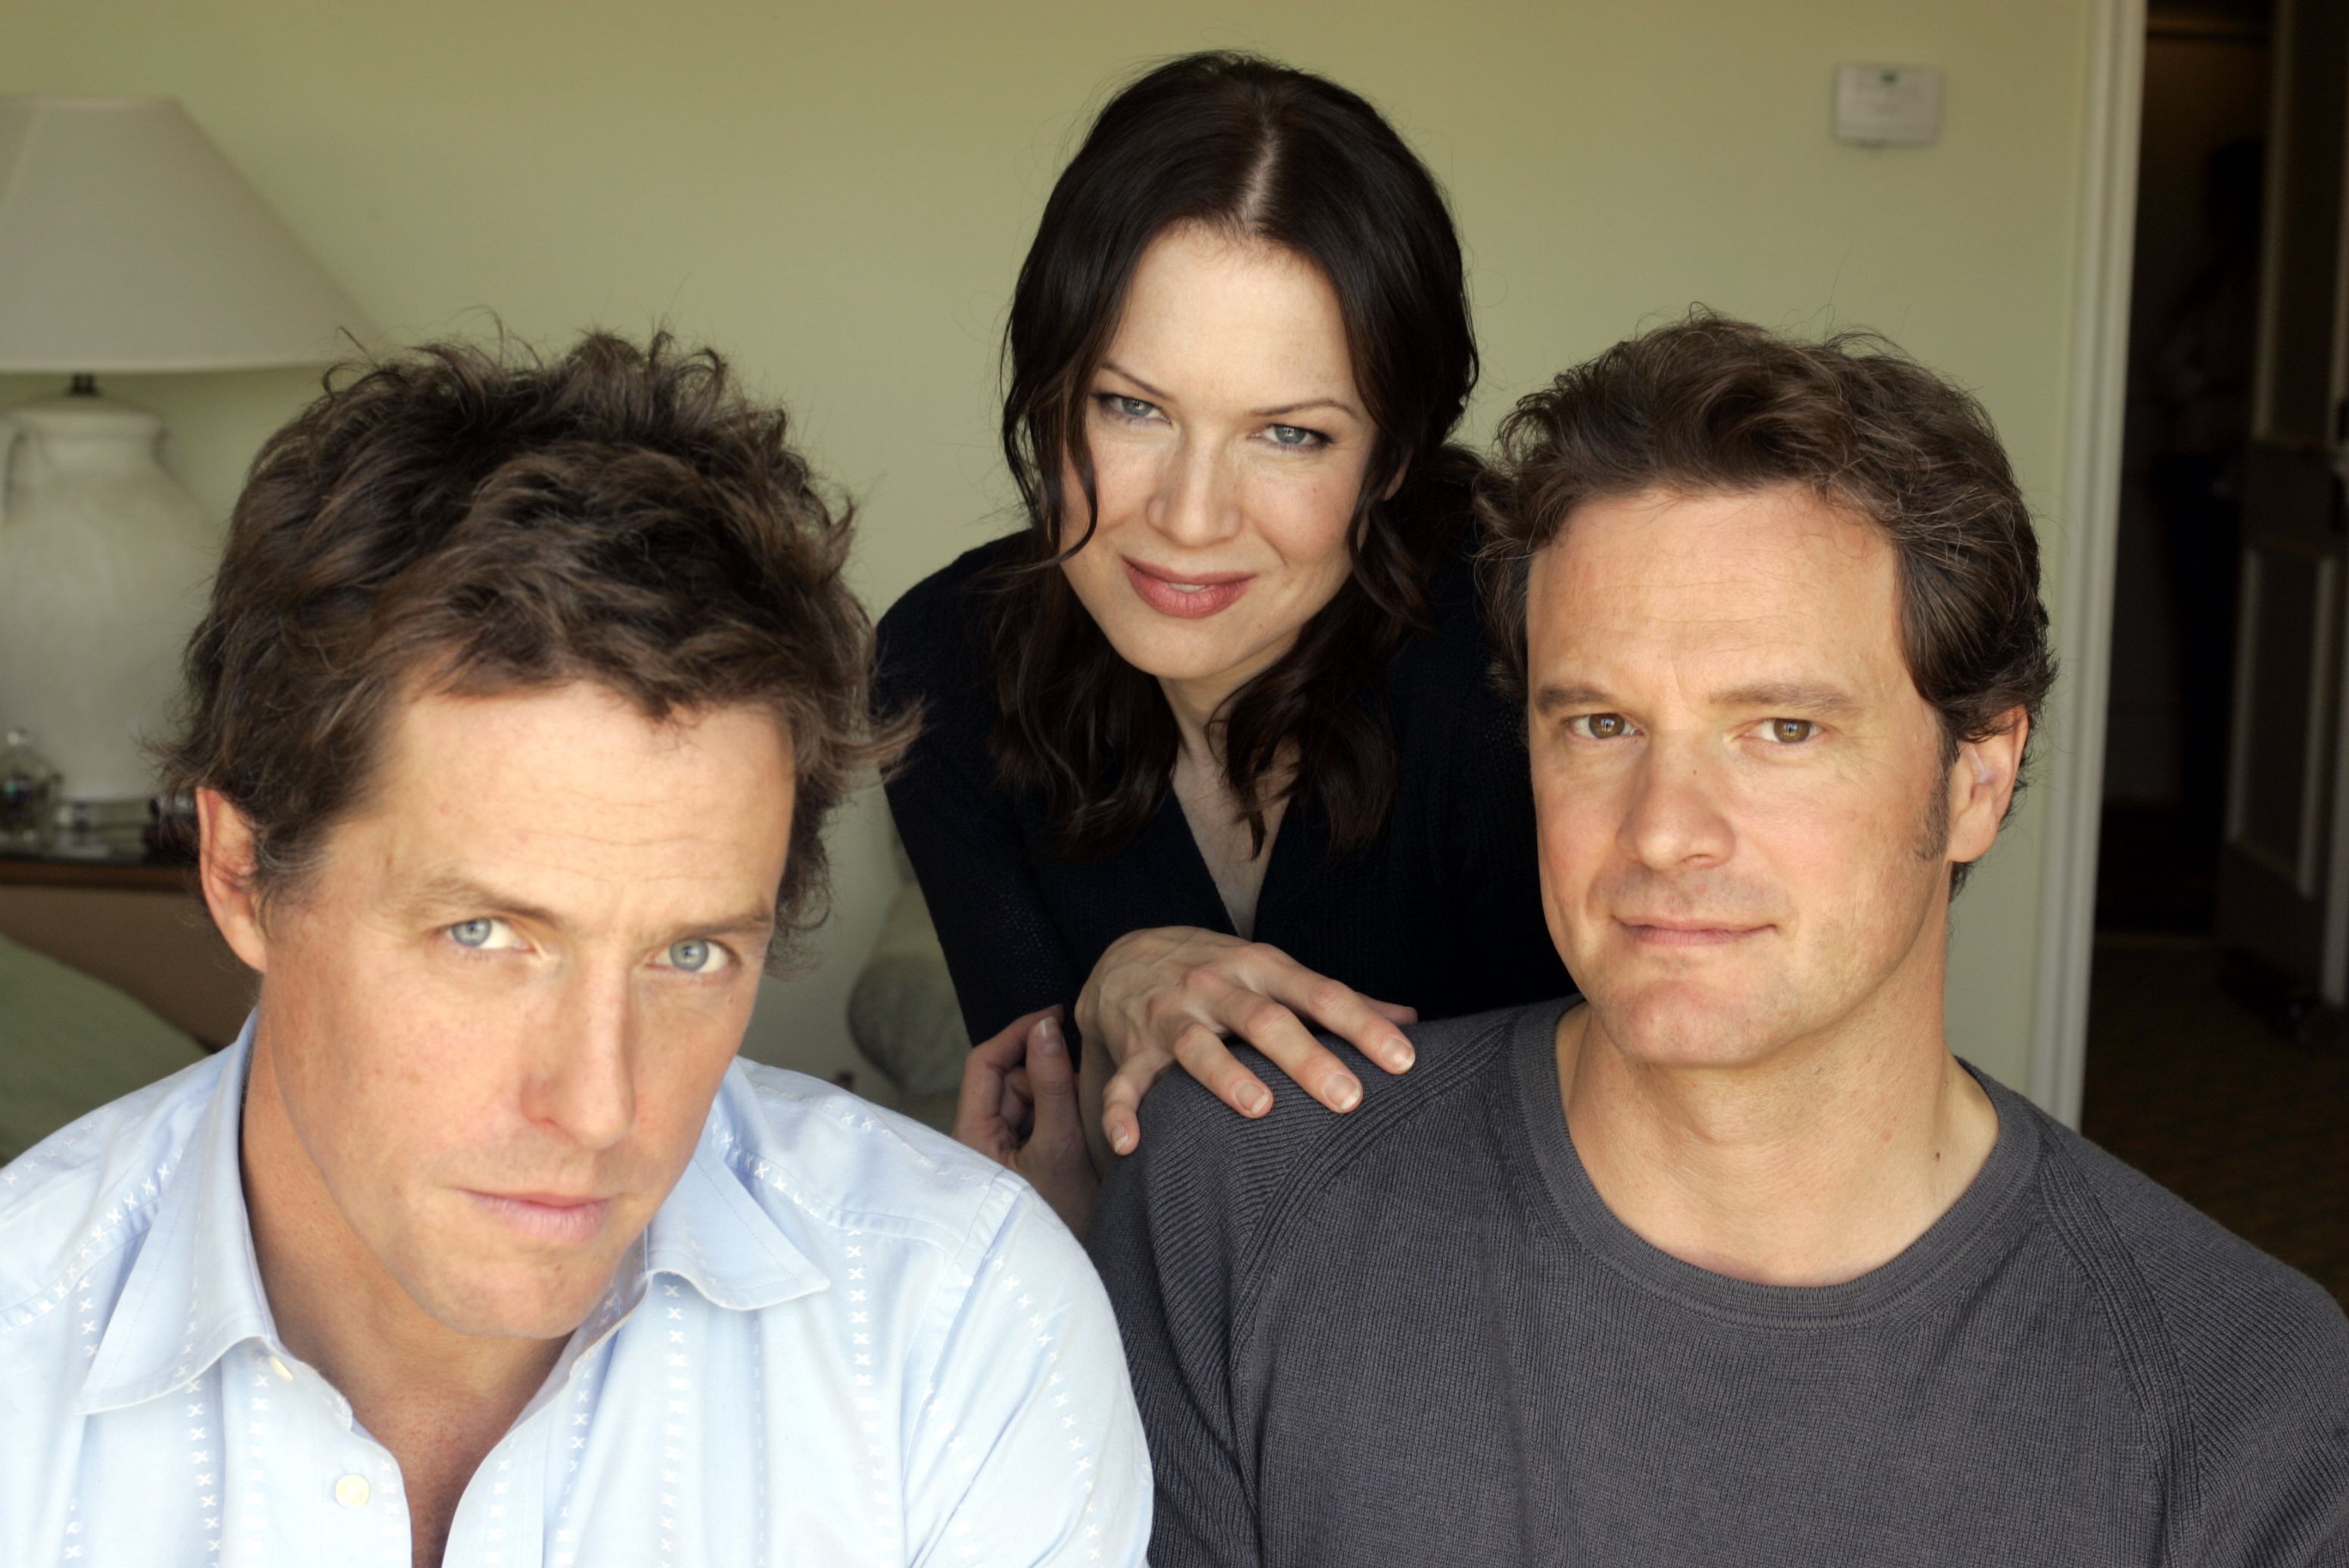 088540.CA.1014.bridget.AMR Rene Zellwegger, Hugh Grant and Colin Firth reprise their roles in the se